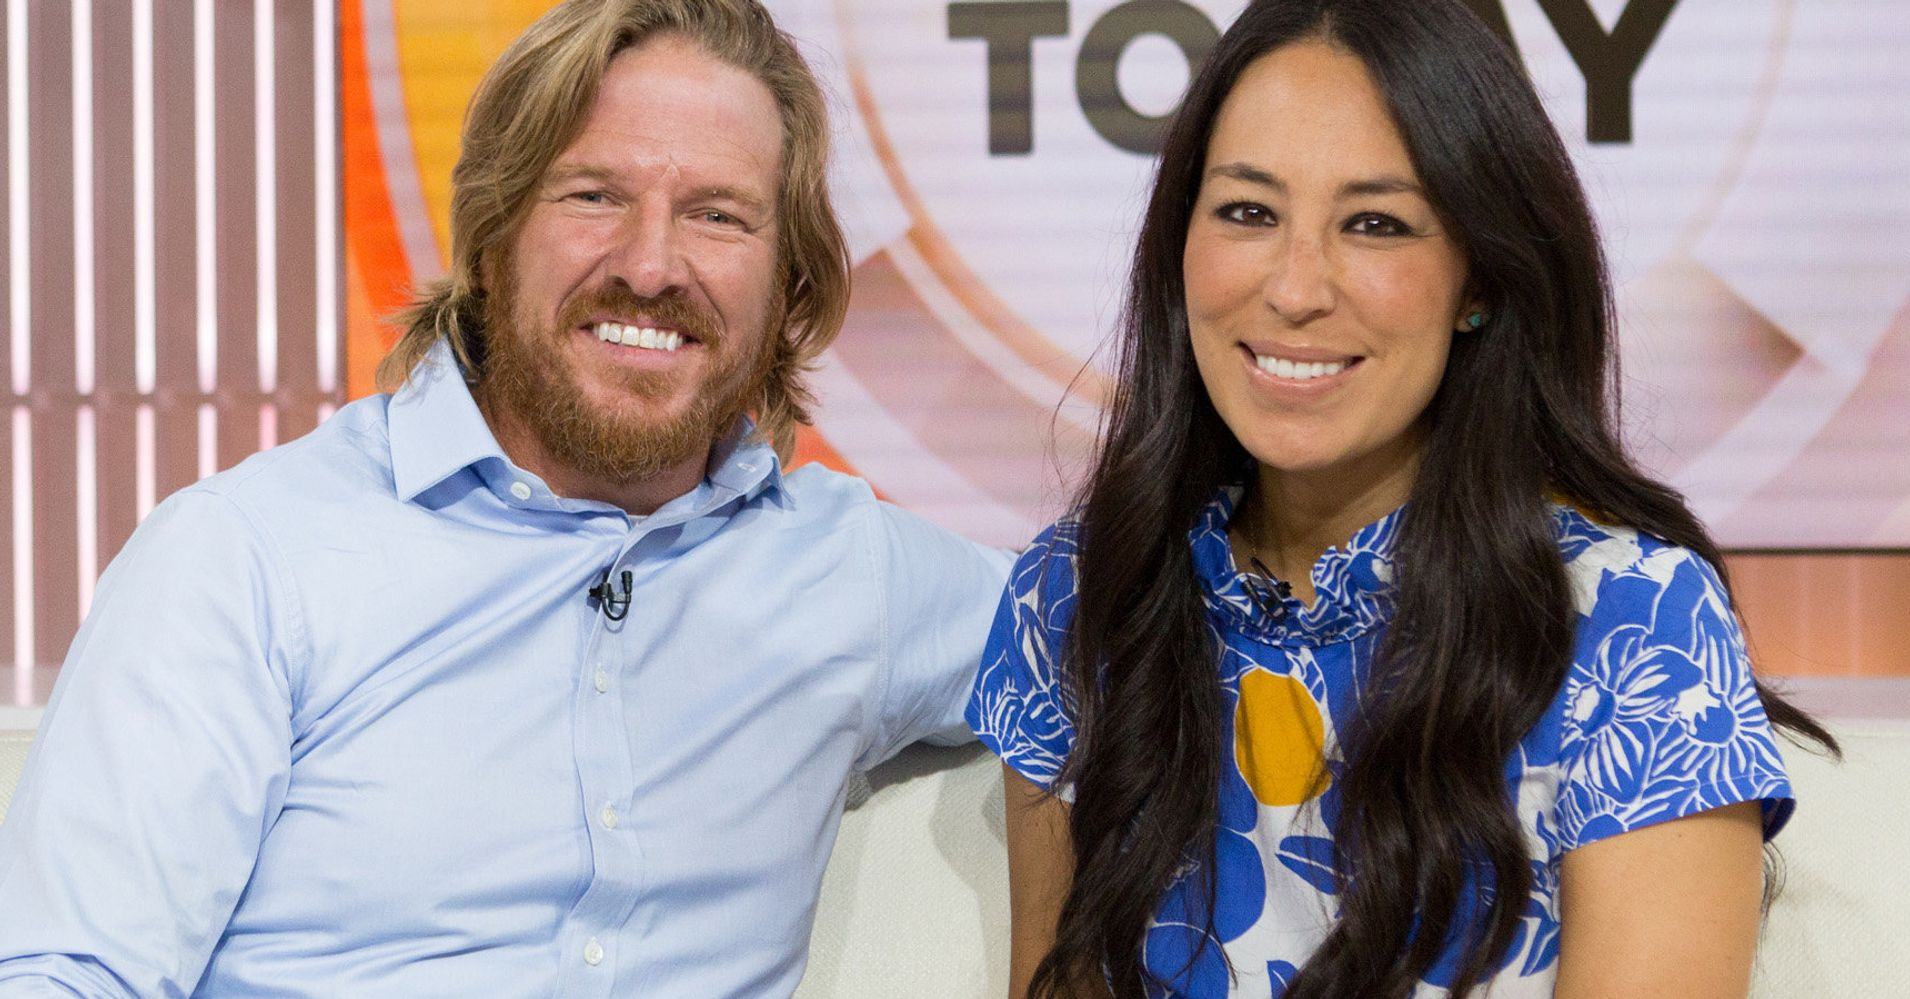 Chip Gaines S Mom Sheds Light On Why Fixer Upper Is Ending Huffpost Life